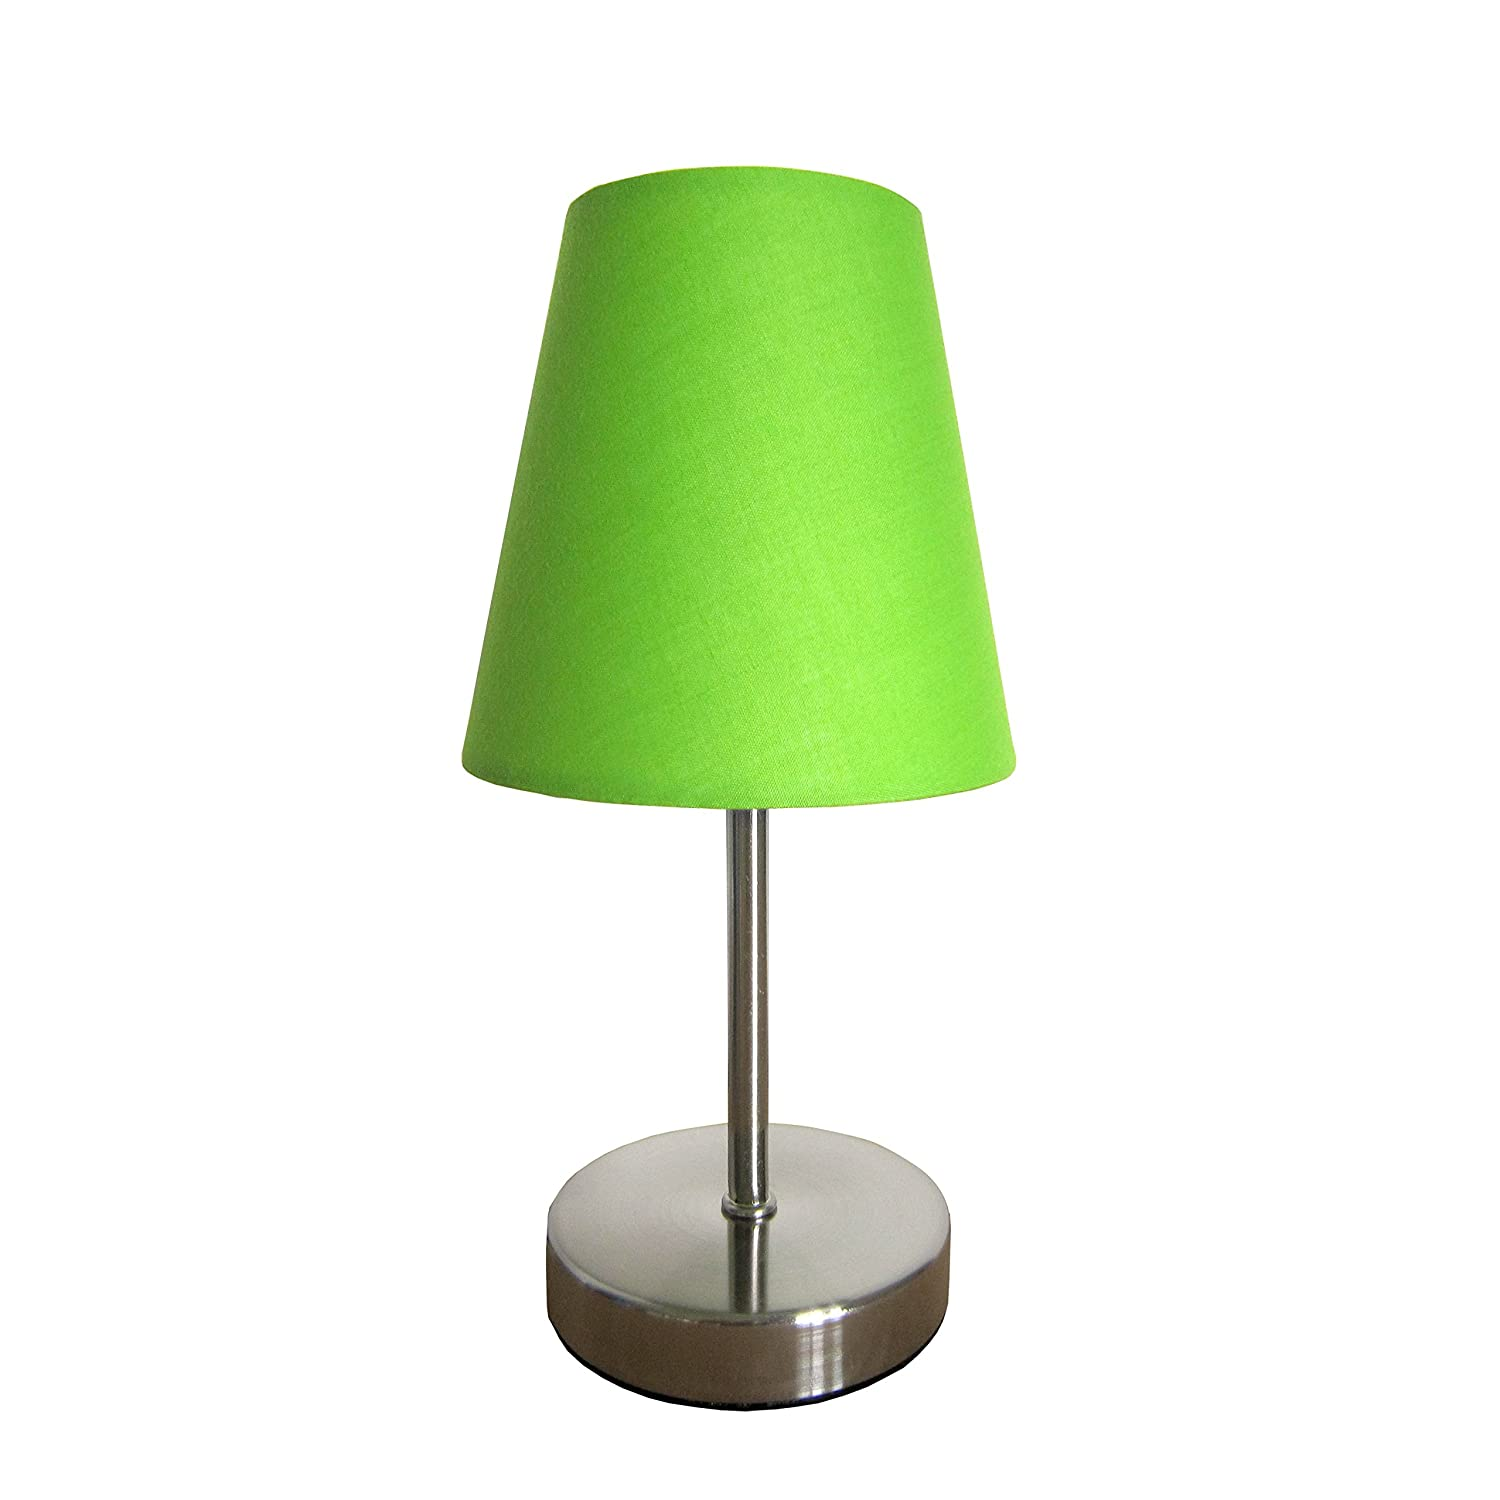 Simple Designs LT2013-GRN Sand Nickel Mini Basic Table Lamp with Fabric Shade, Green